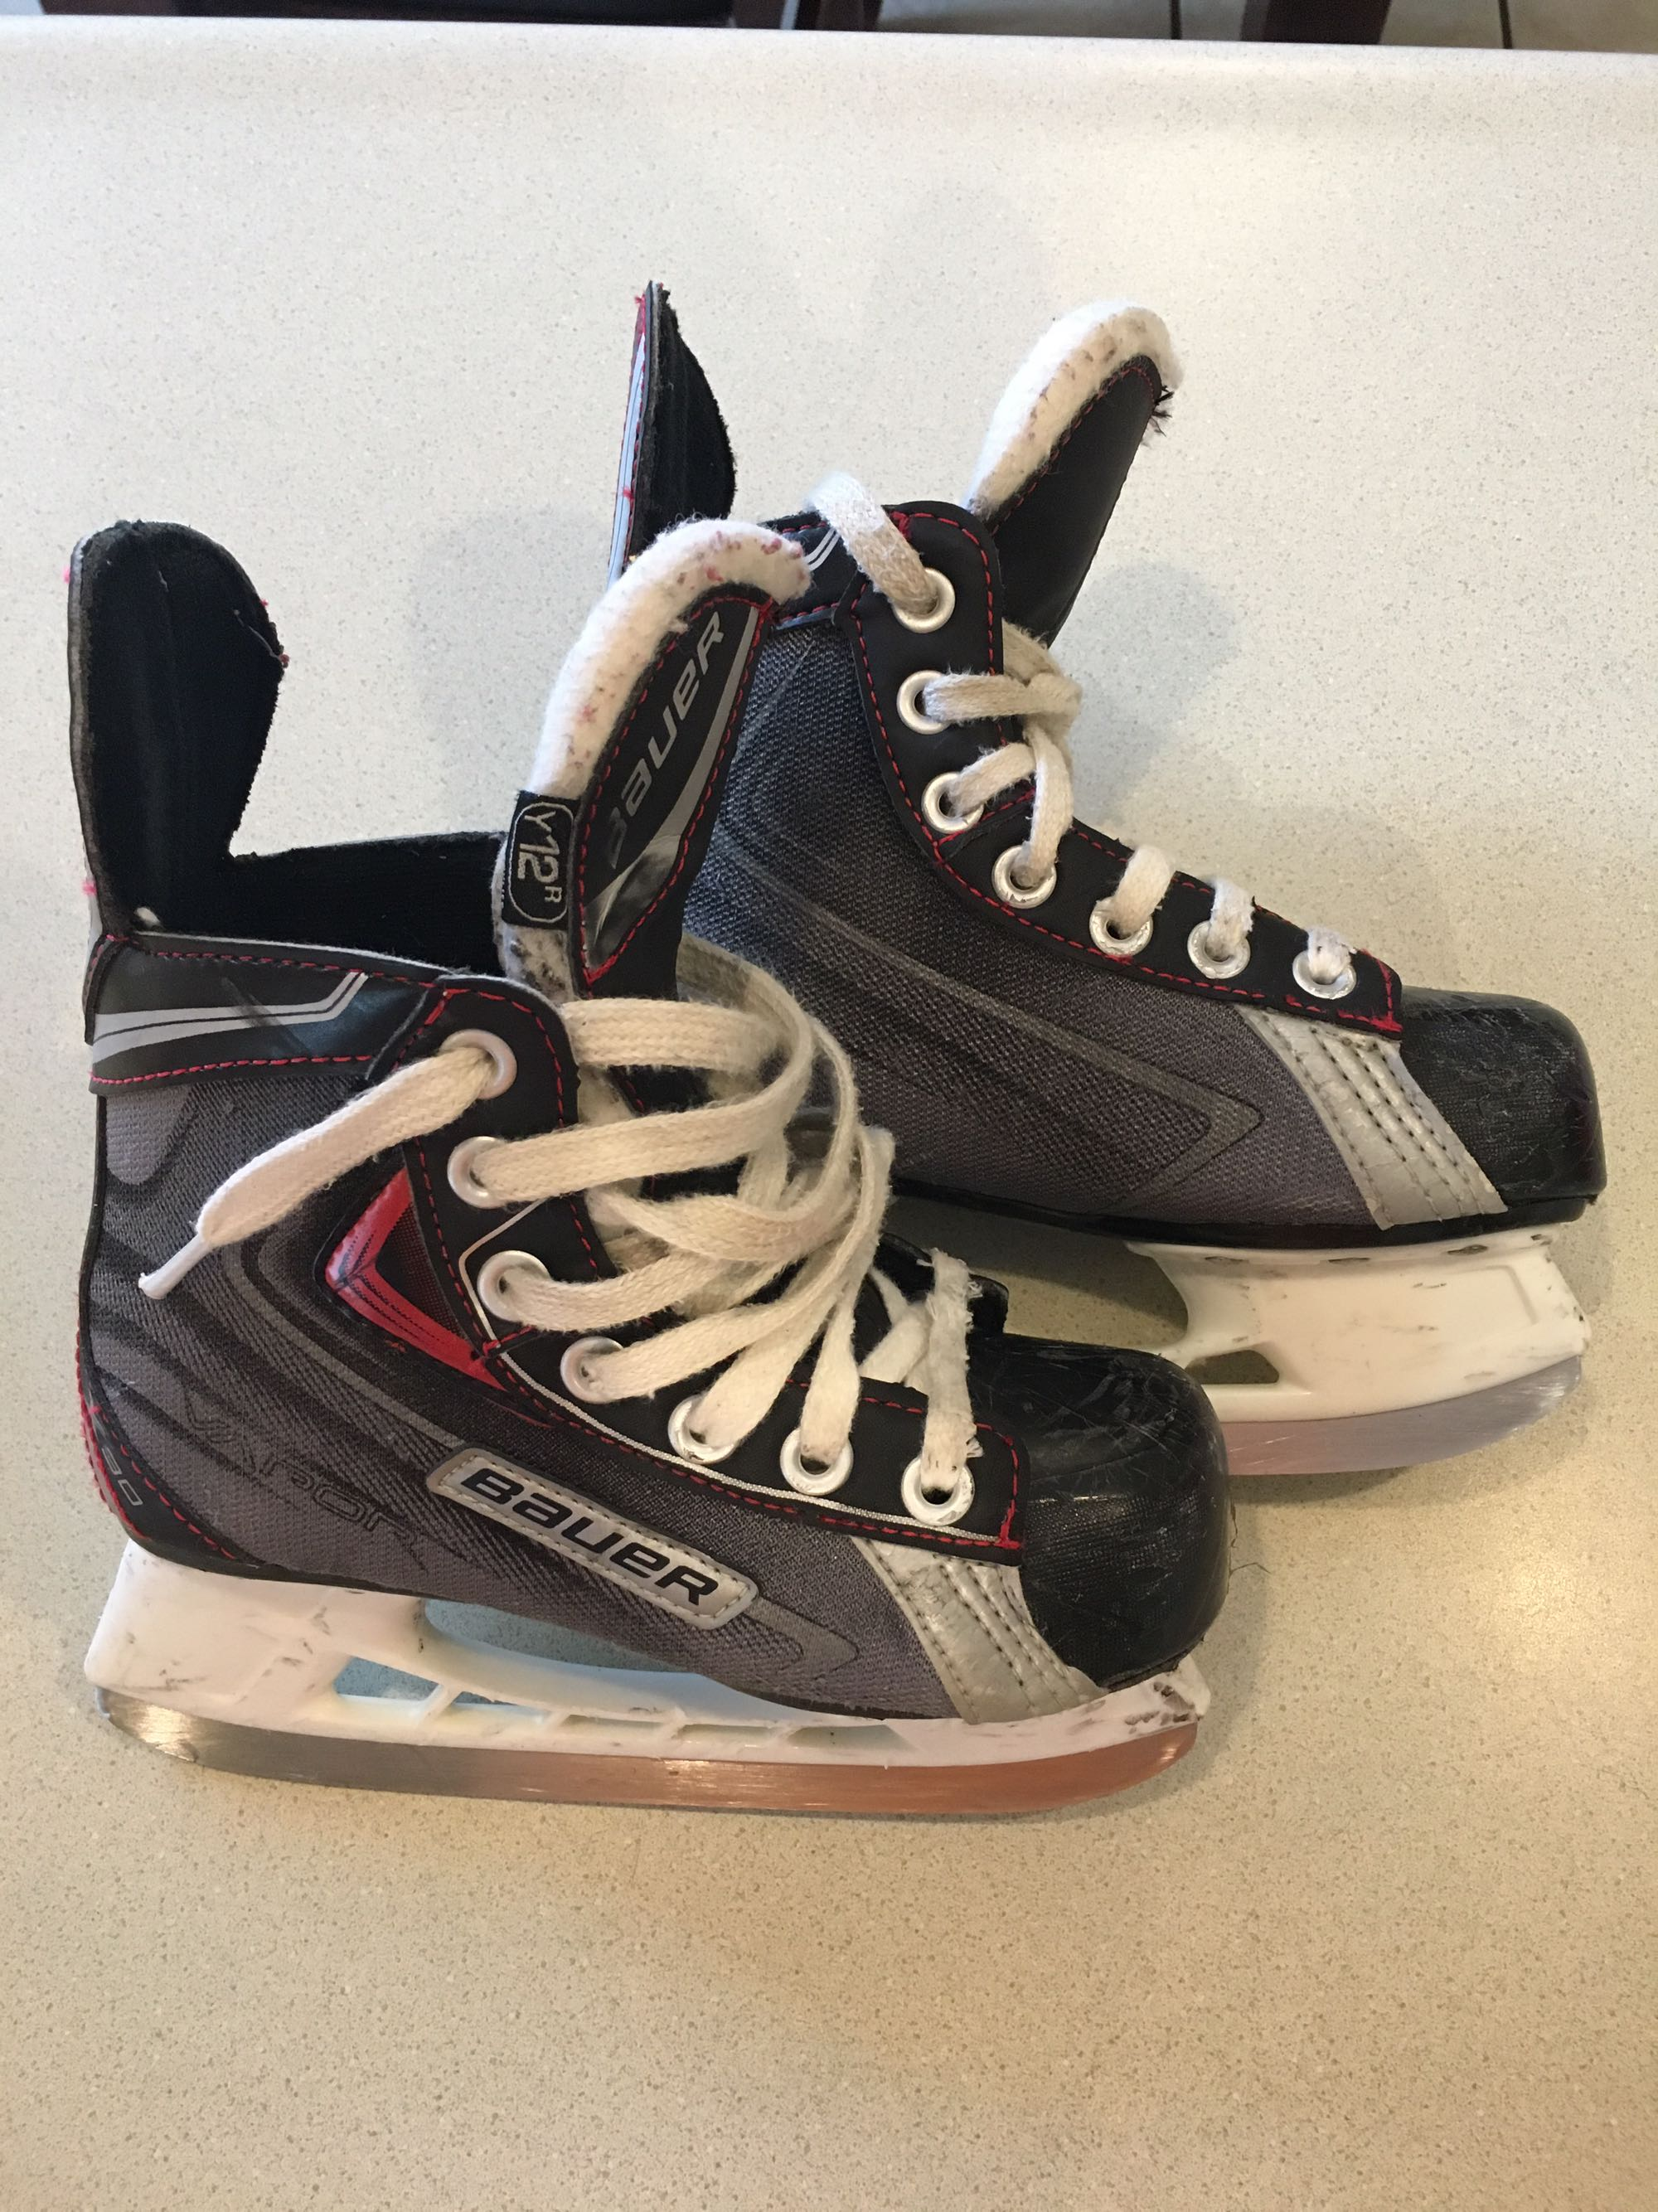 Bauer hockey skates, boys size 12, Marysville swap, $5.